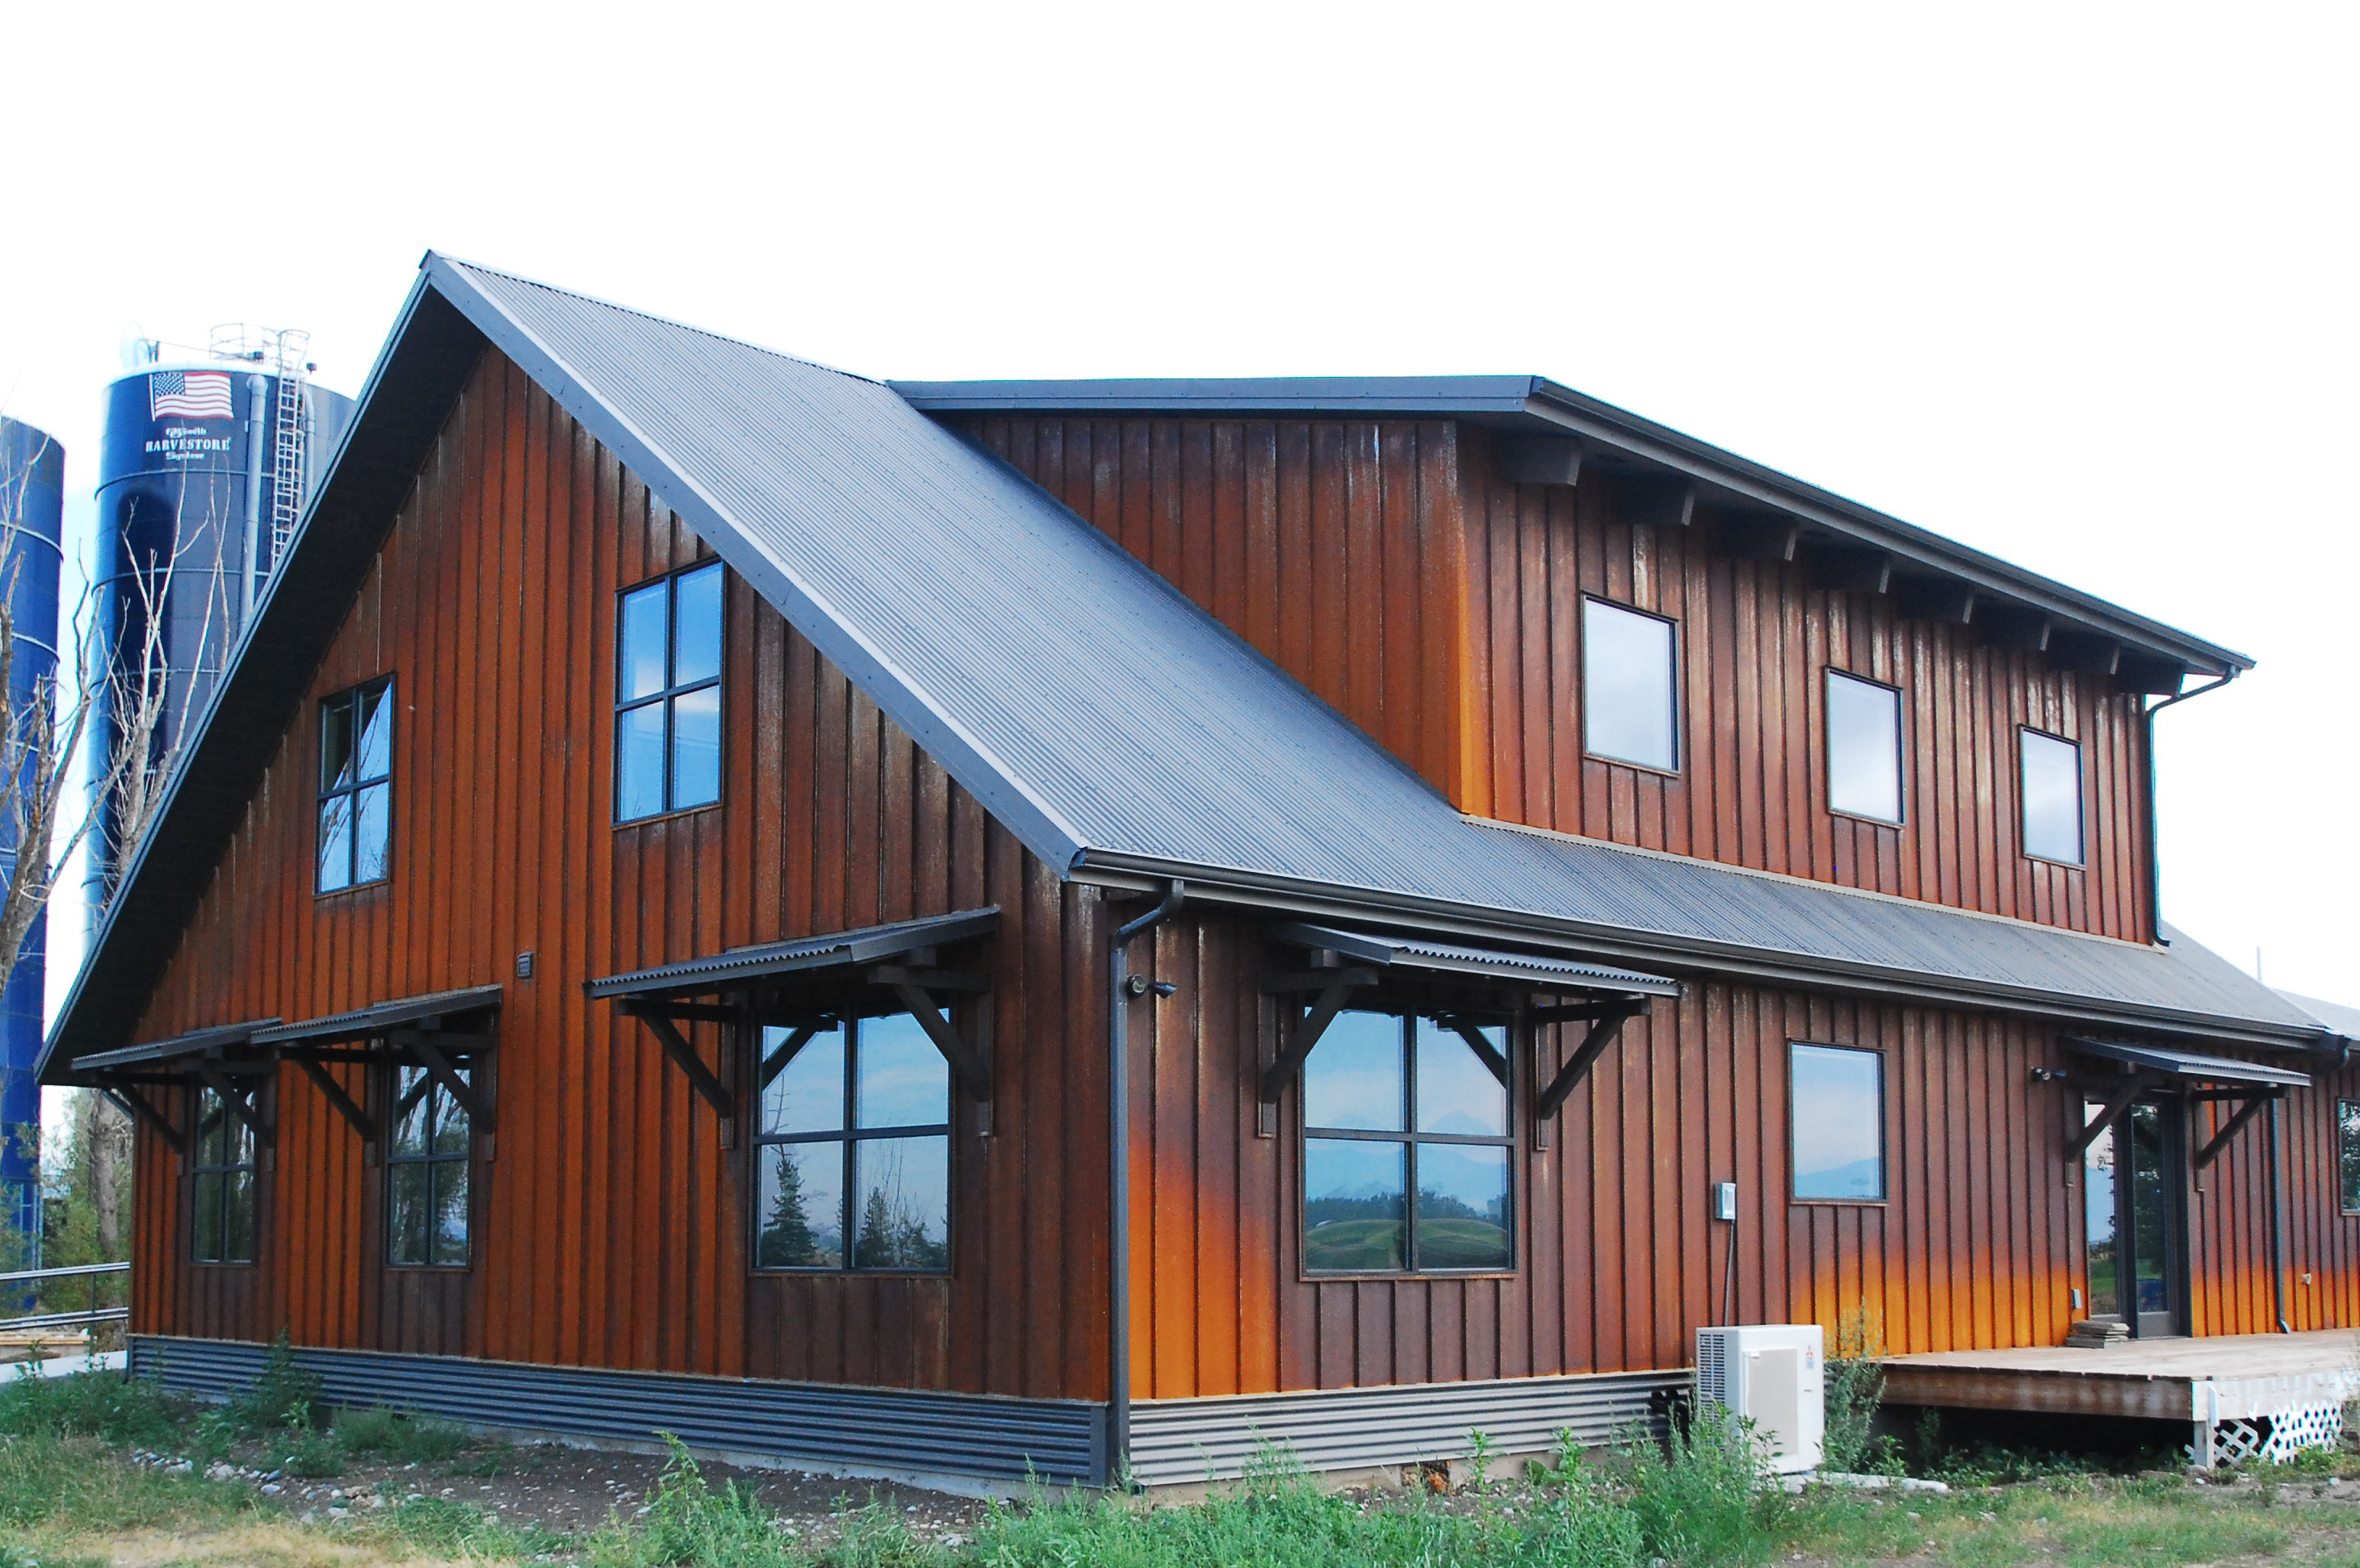 House Siding Options, Plus Costs, Pros & Cons 2020 – Siding Cost Guide –  Exploring House Siding Options